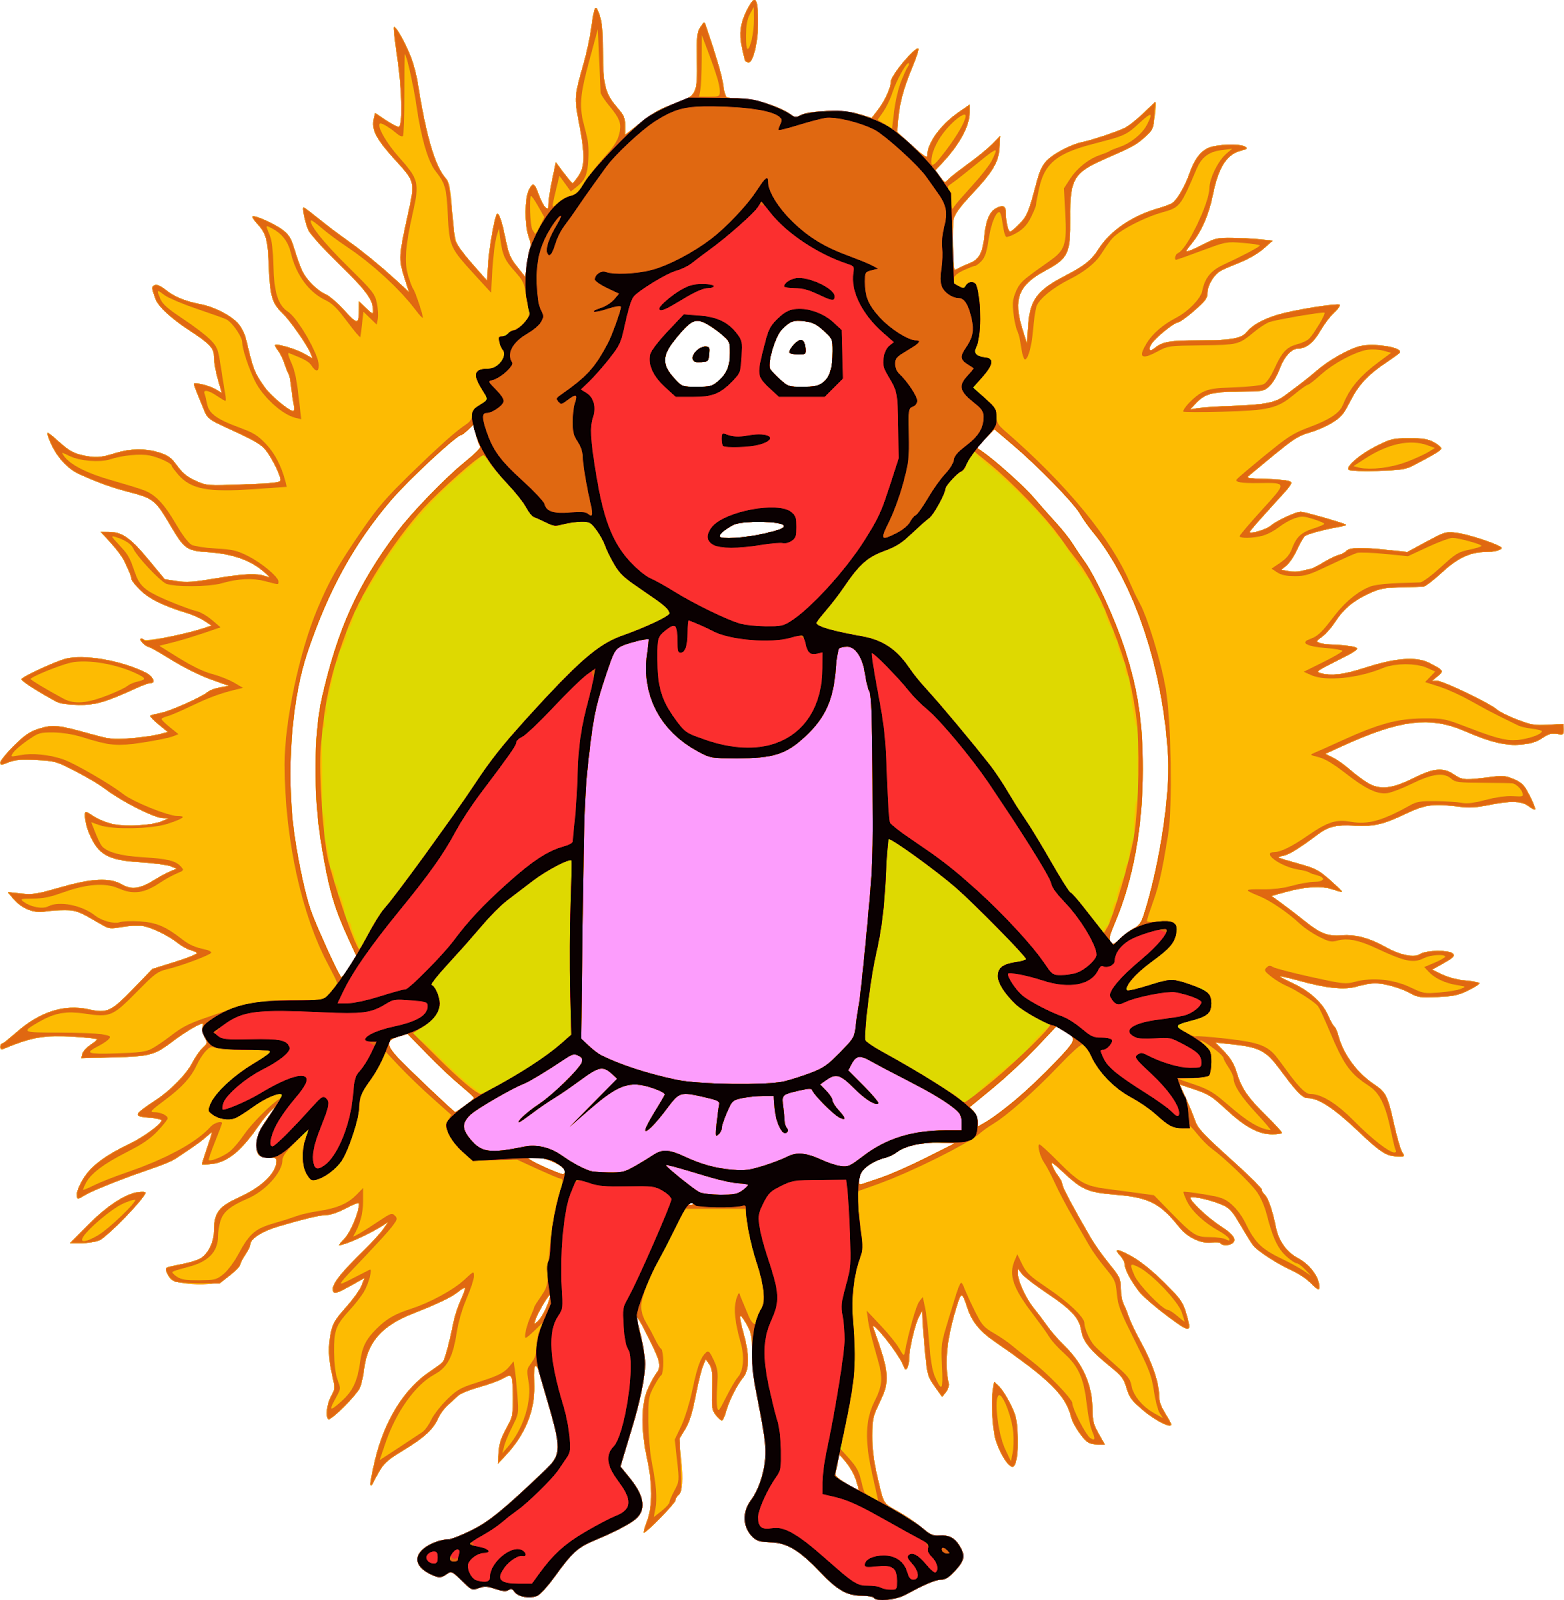 Clipart sunshine sunscreen. Pink petal glow there